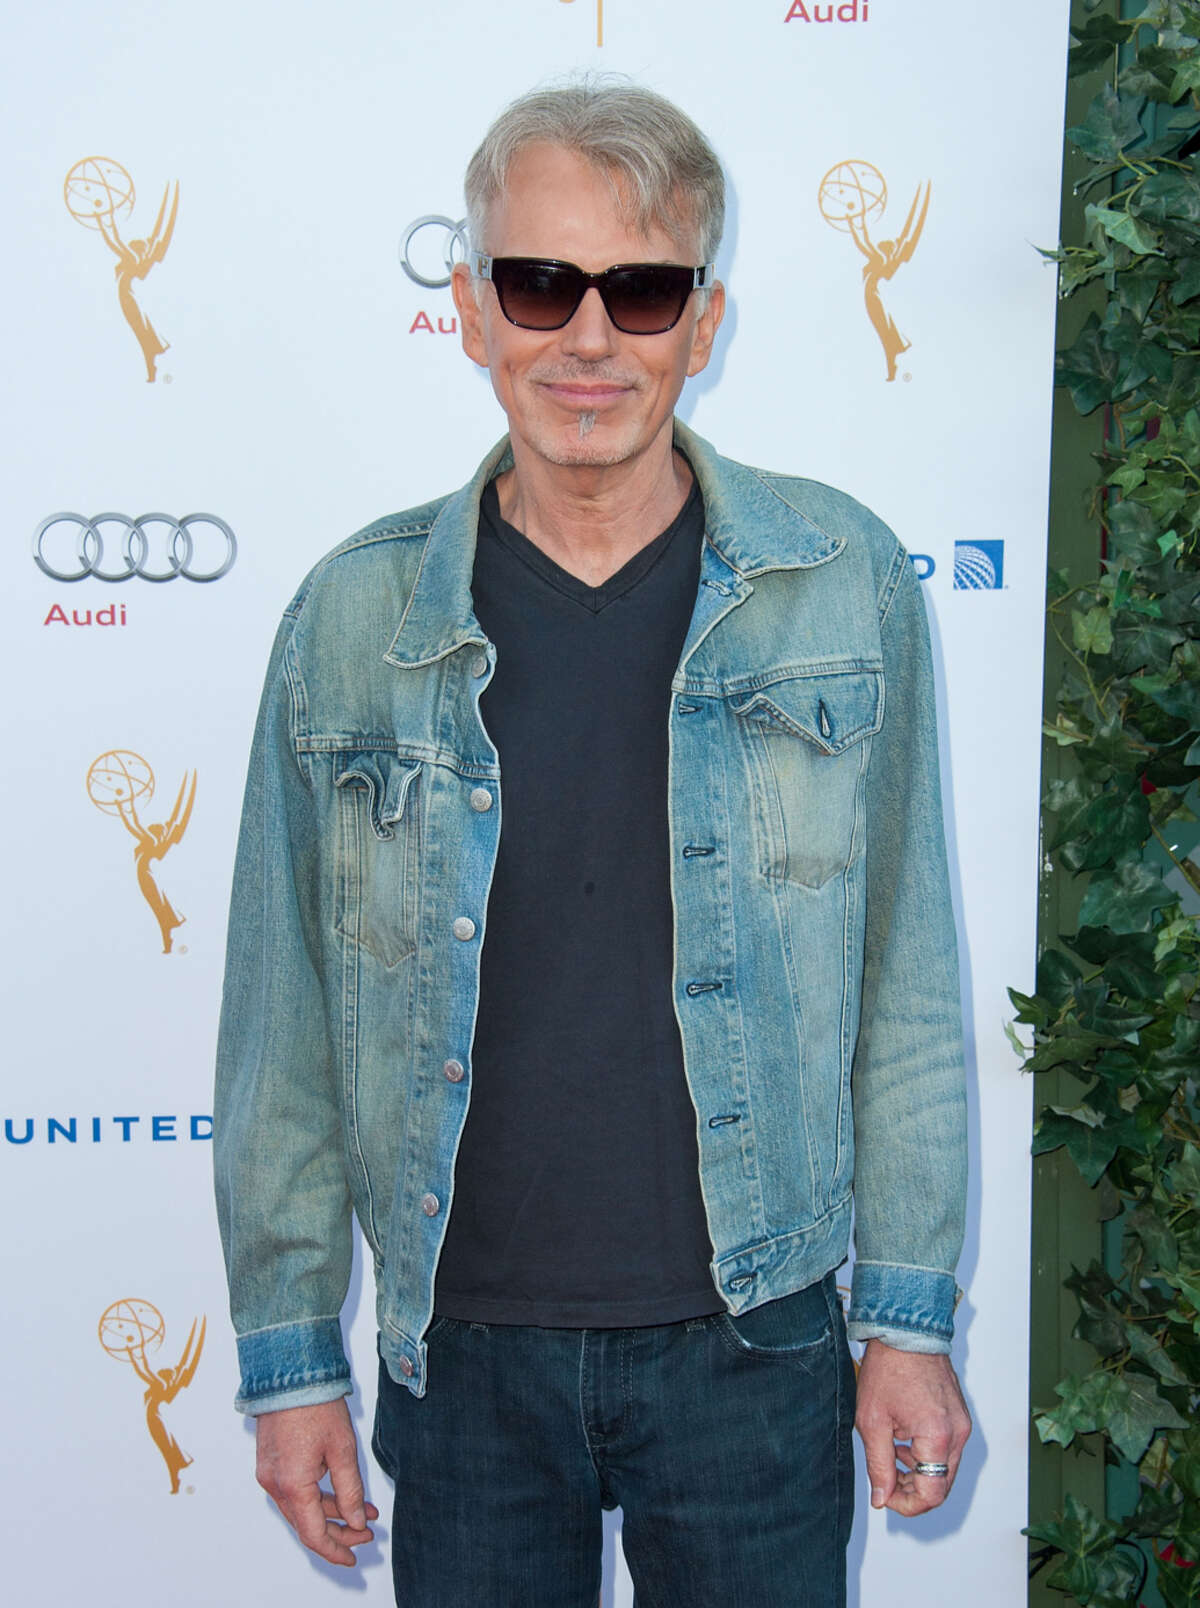 WEST HOLLYWOOD, CA - AUGUST 23: Actor Billy Bob Thornton arrives at the Television Academy's 66th Annual Emmy Awards Performers Nominee Reception at Spectra by Wolfgang Puck at the Pacific Design Center on August 23, 2014 in West Hollywood, California.